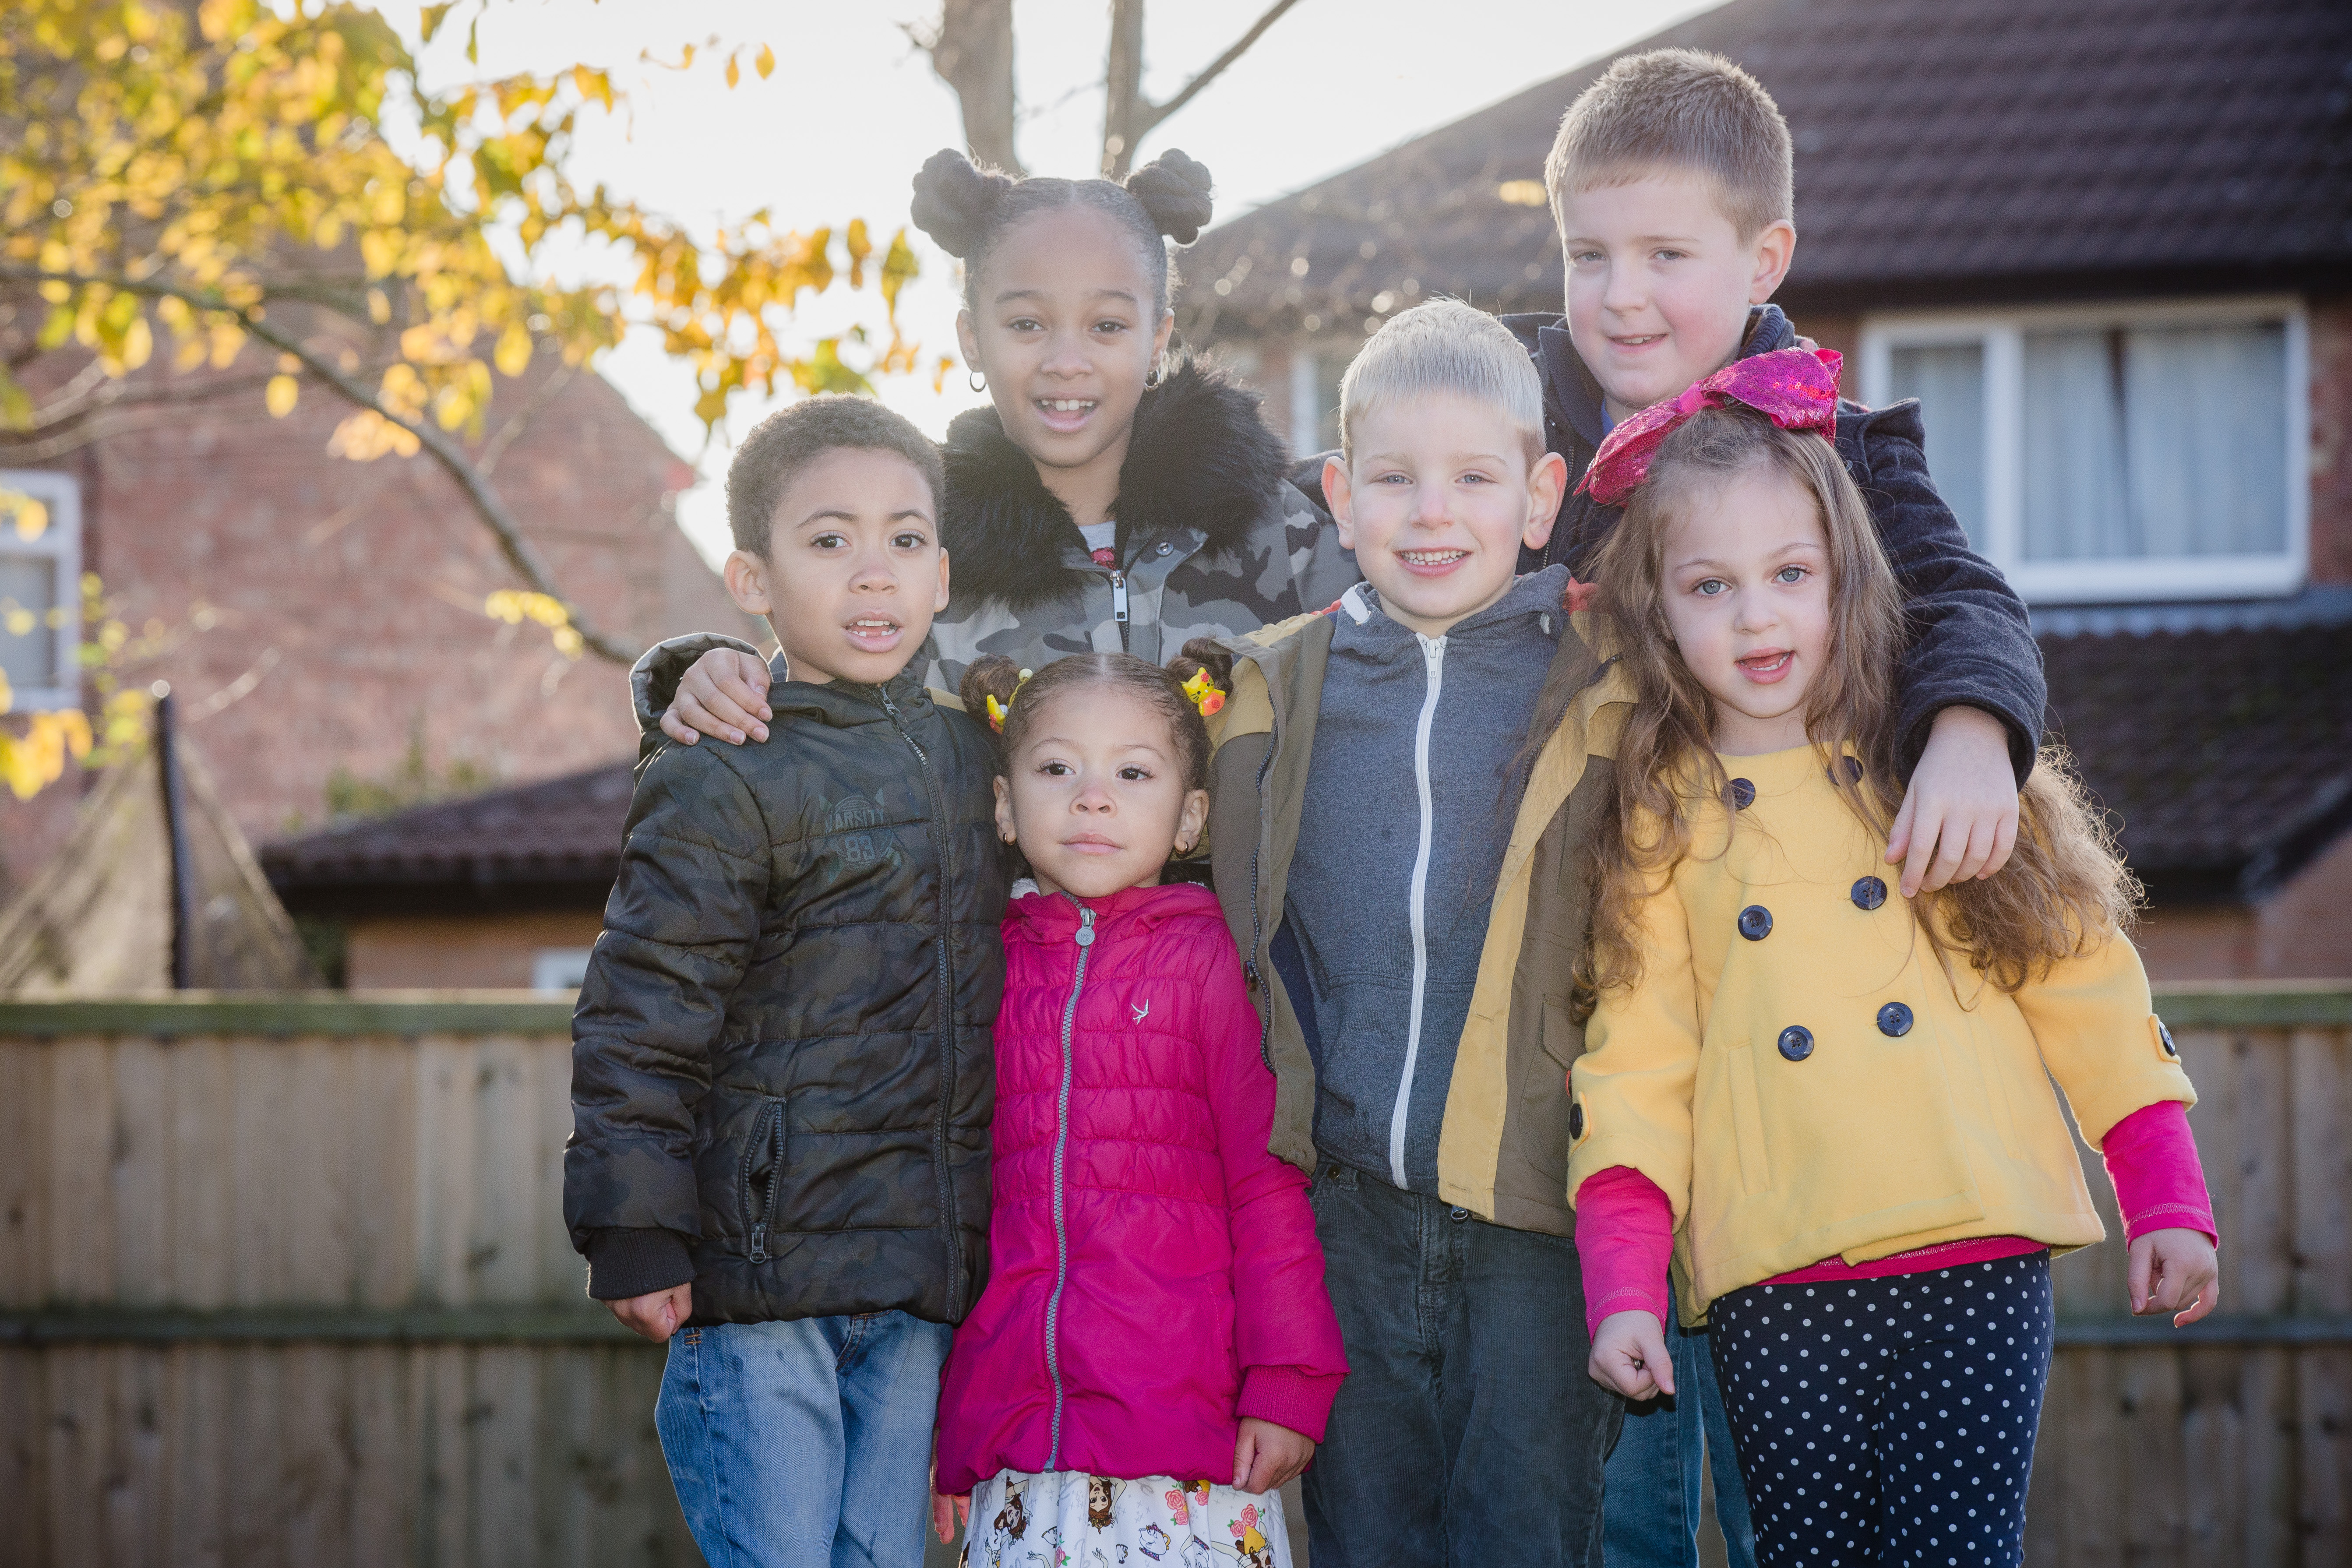 Fostering as a Christian Q and A - Weds 18th September